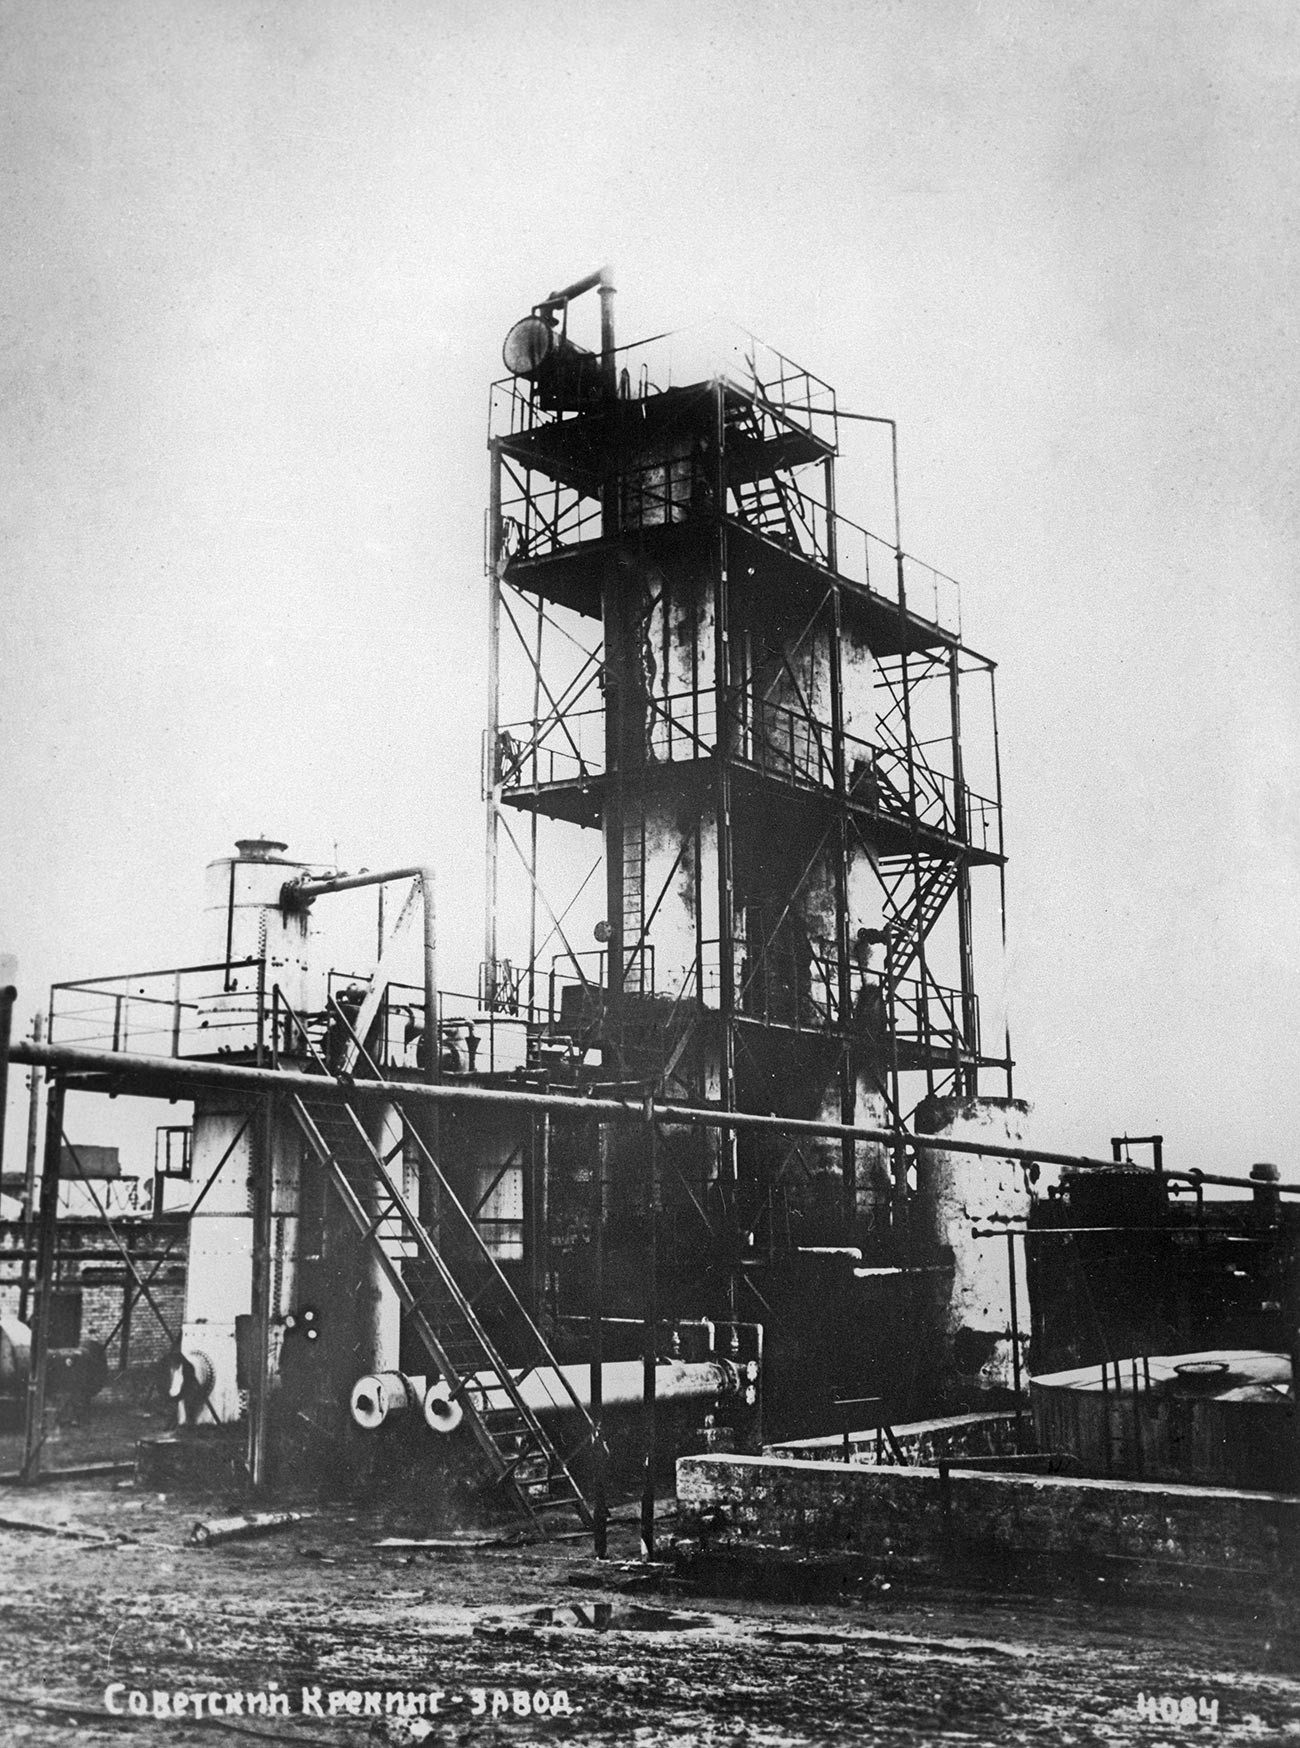 An installation for thermal cracking of oil following Shukhov's method, Baku, USSR, 1934